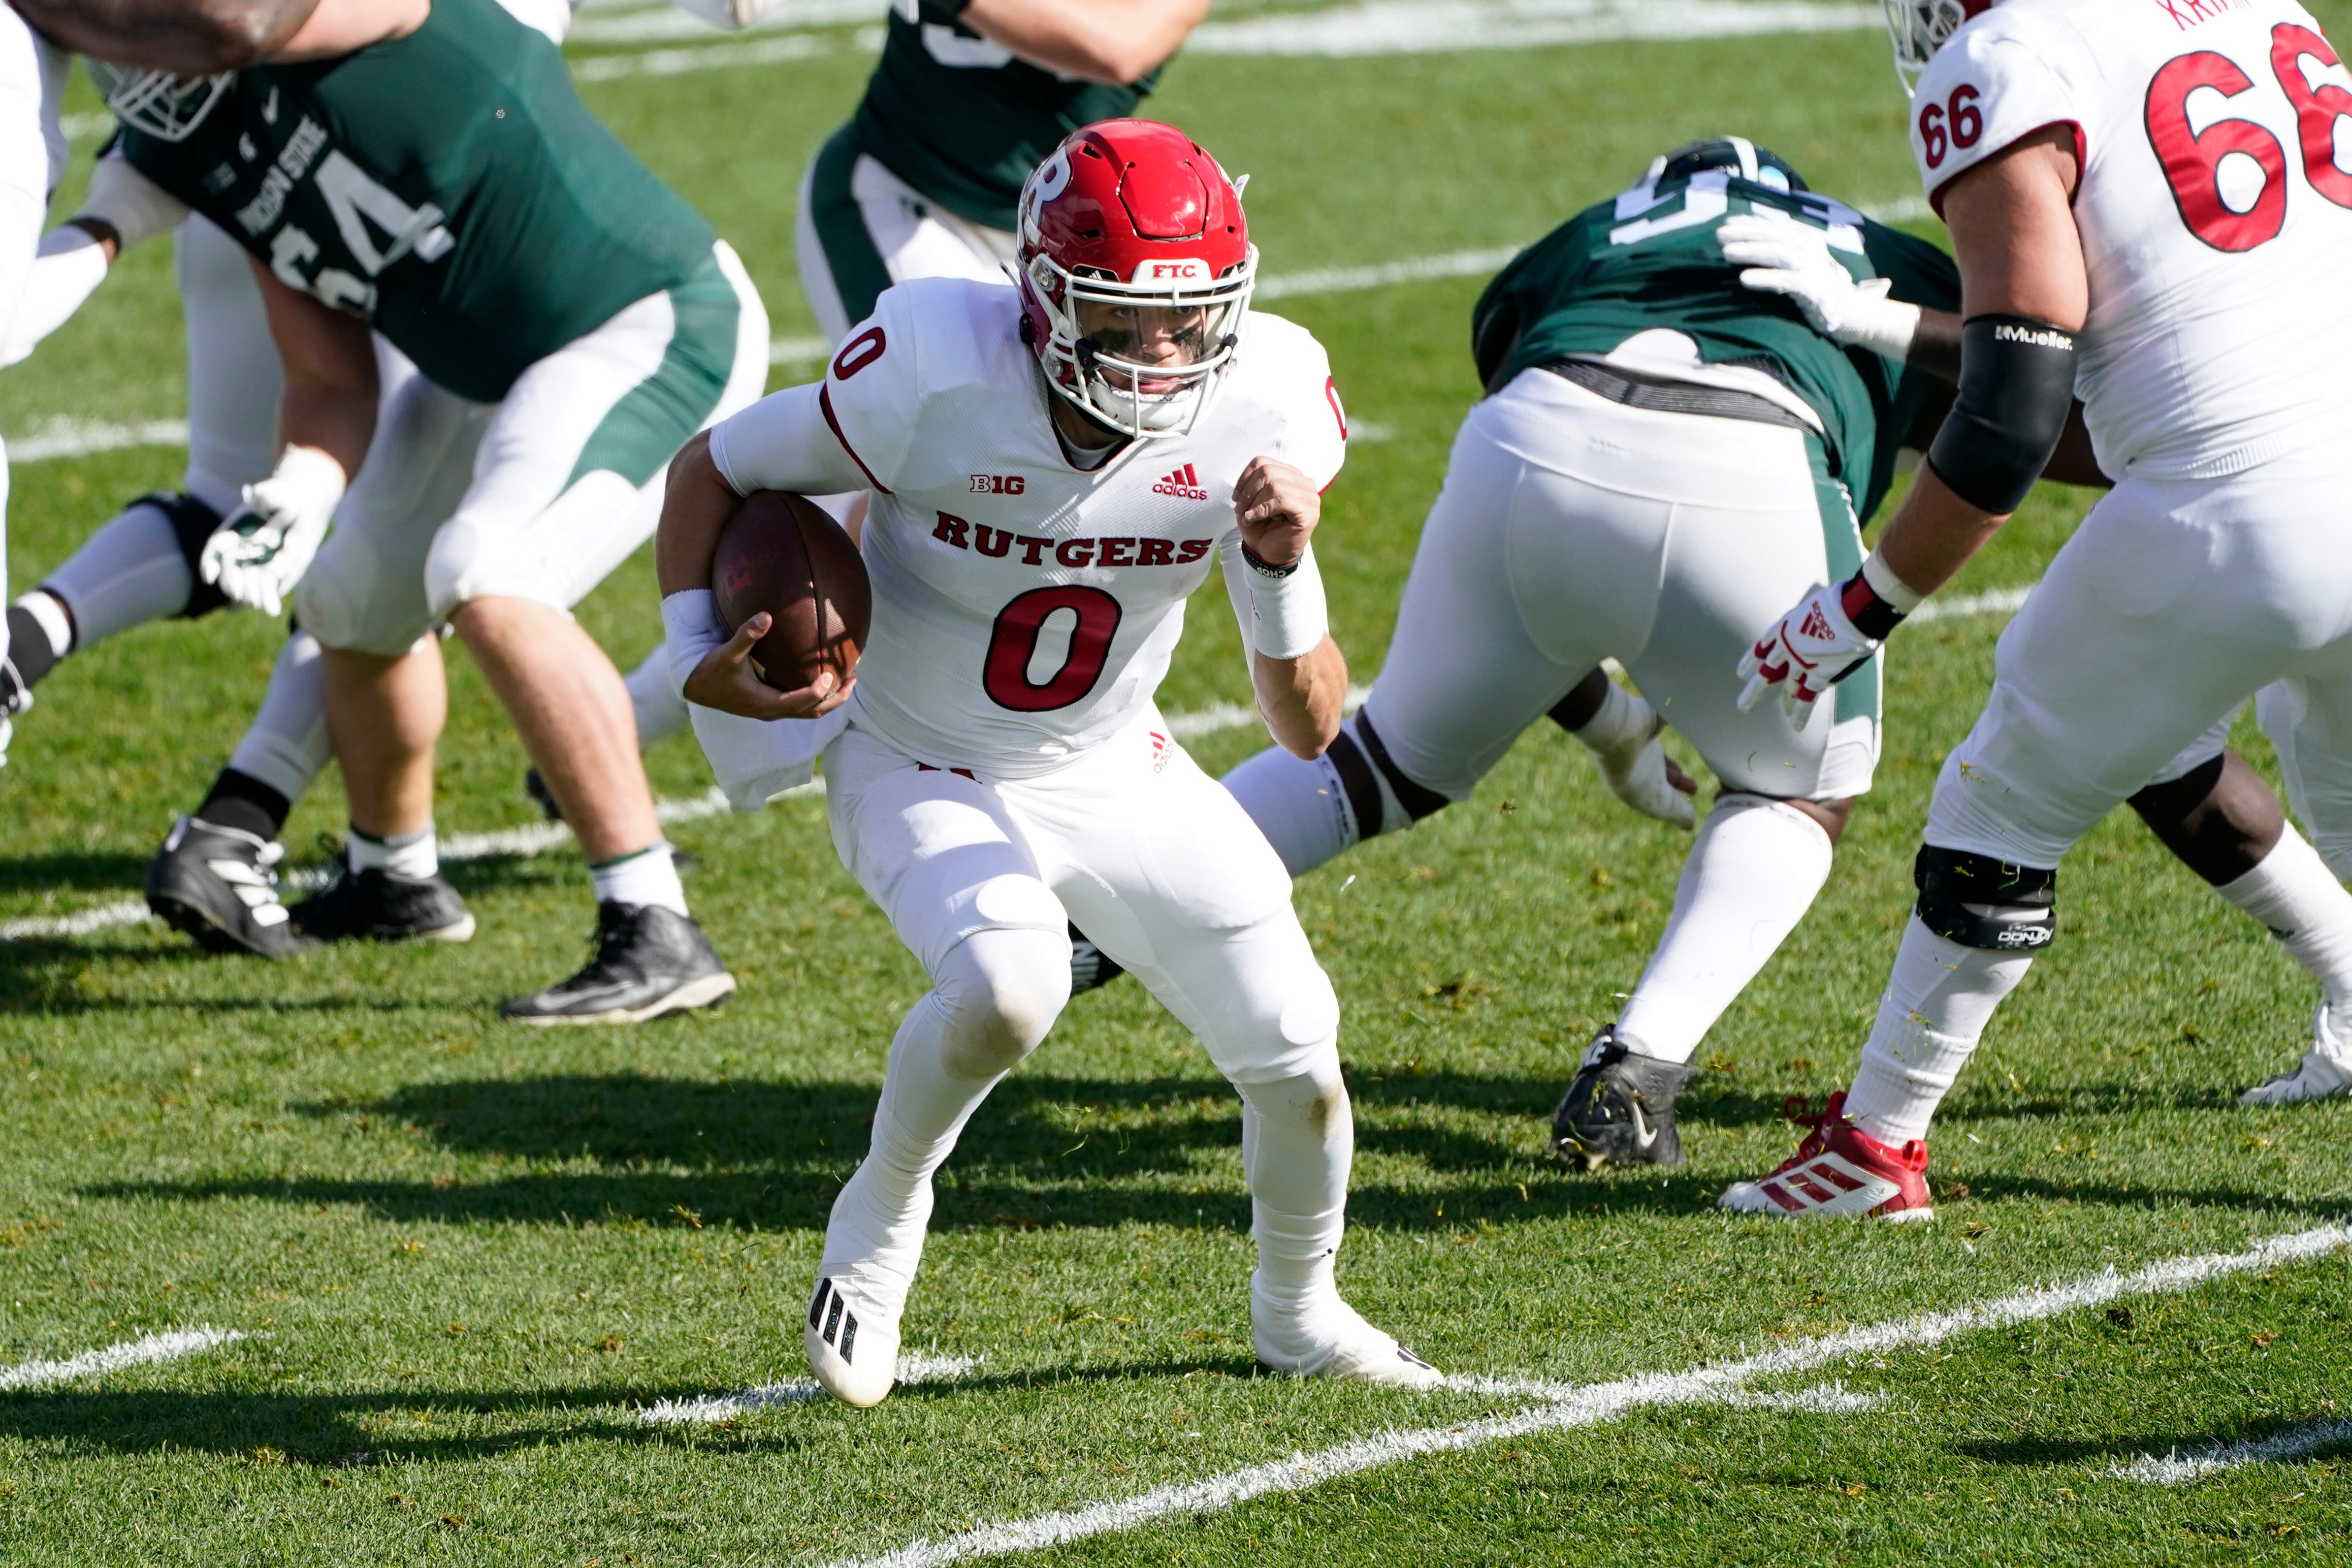 Rutgers writer Chris Iseman on Scarlet Knights' win over Michigan State